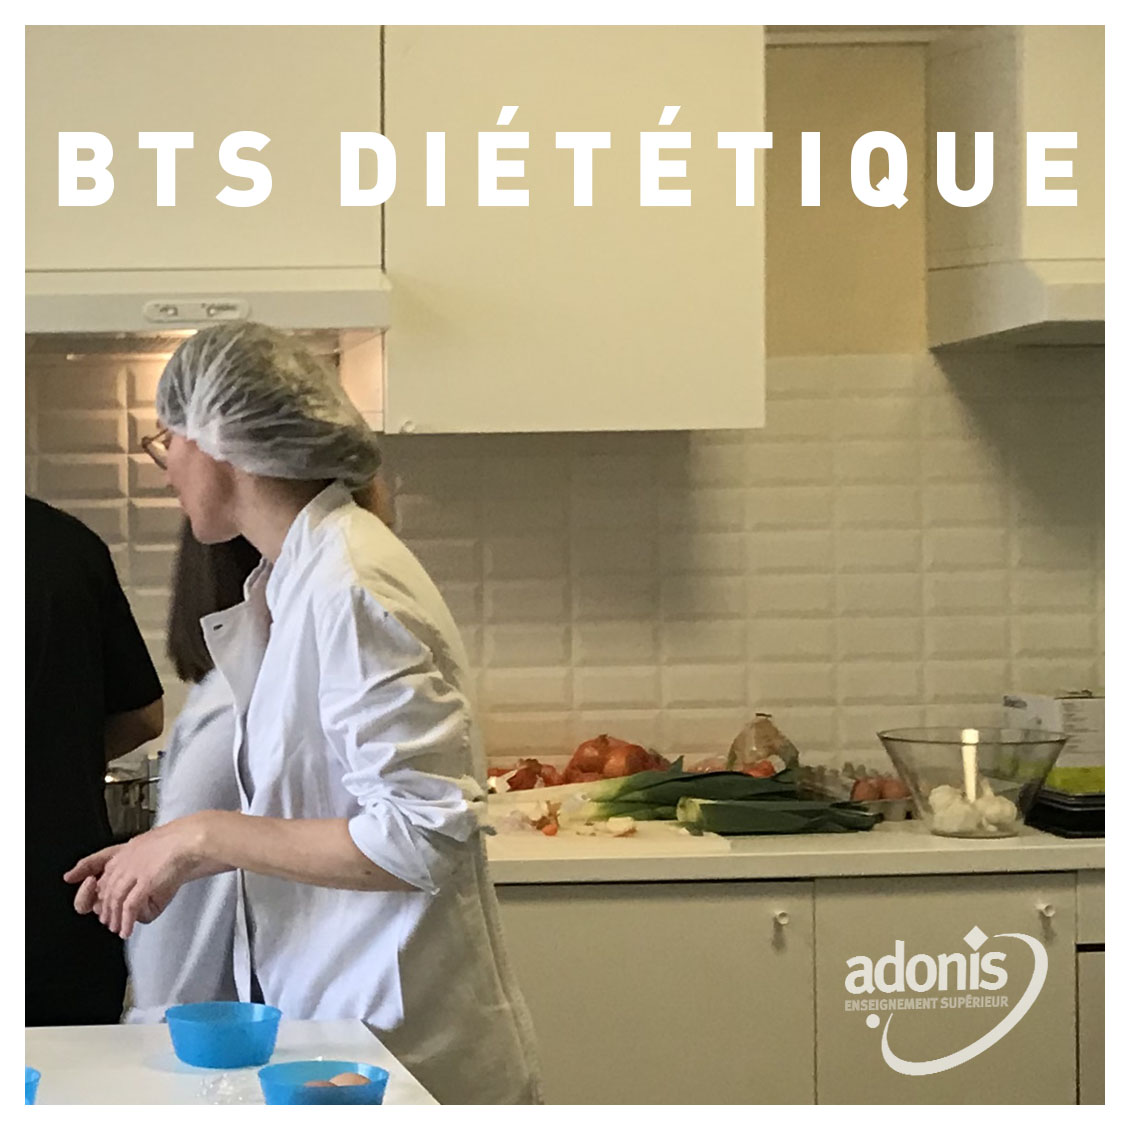 BTS DIETETIQUE ETUDIS CULTURE GENERALE ET EXPRESSION